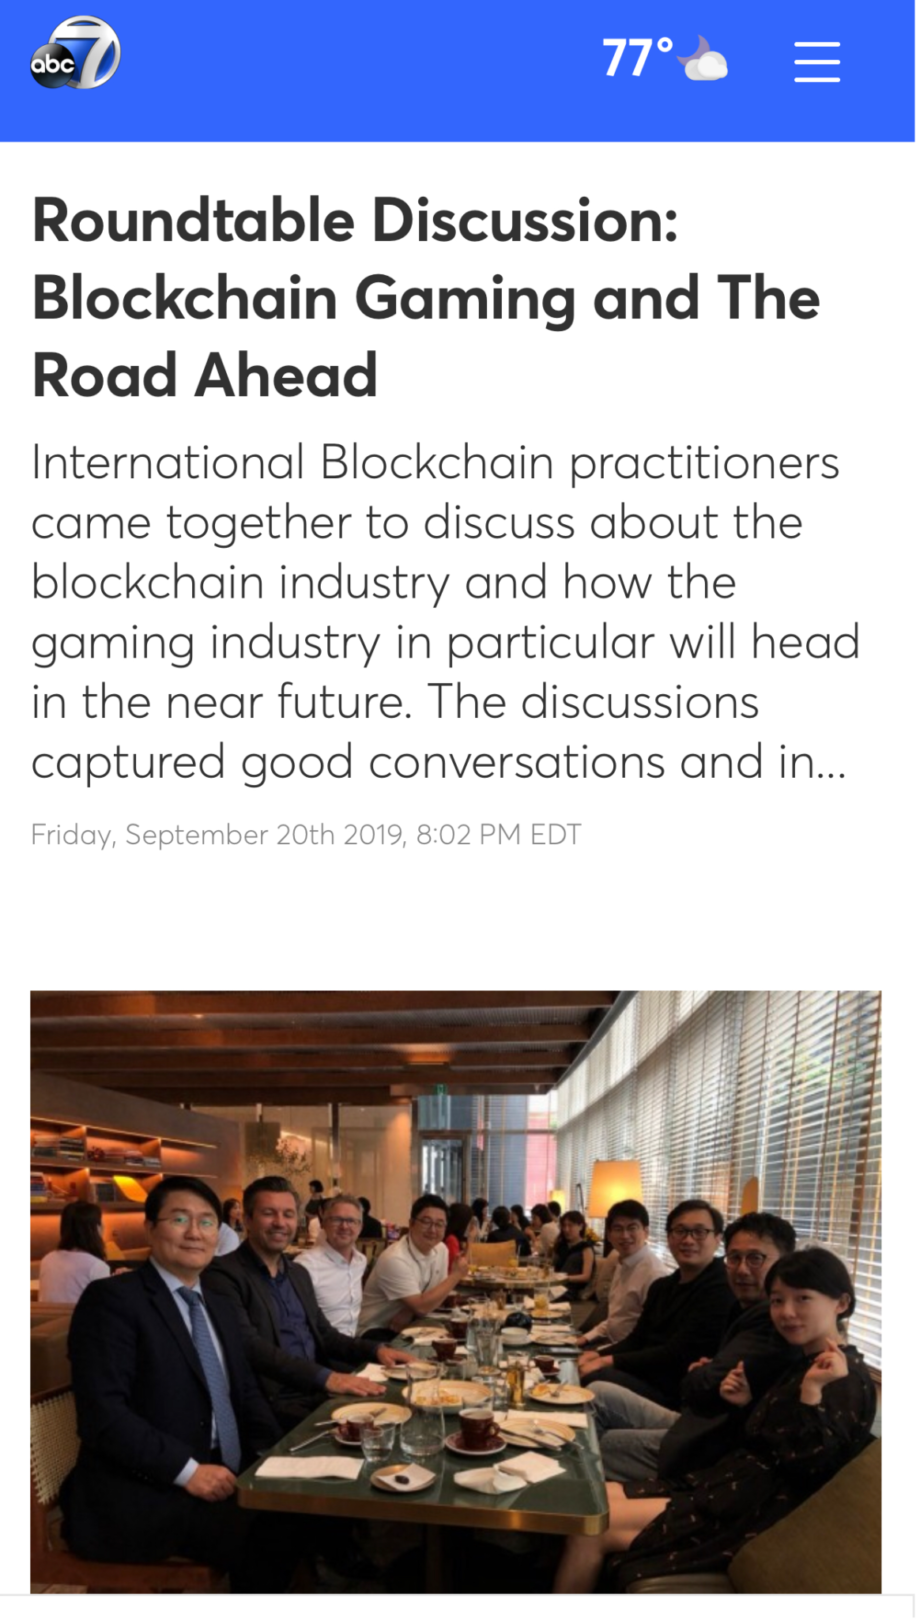 ABC 7 News: Roundtable Discussion: Blockchain Gaming and The Road Ahead